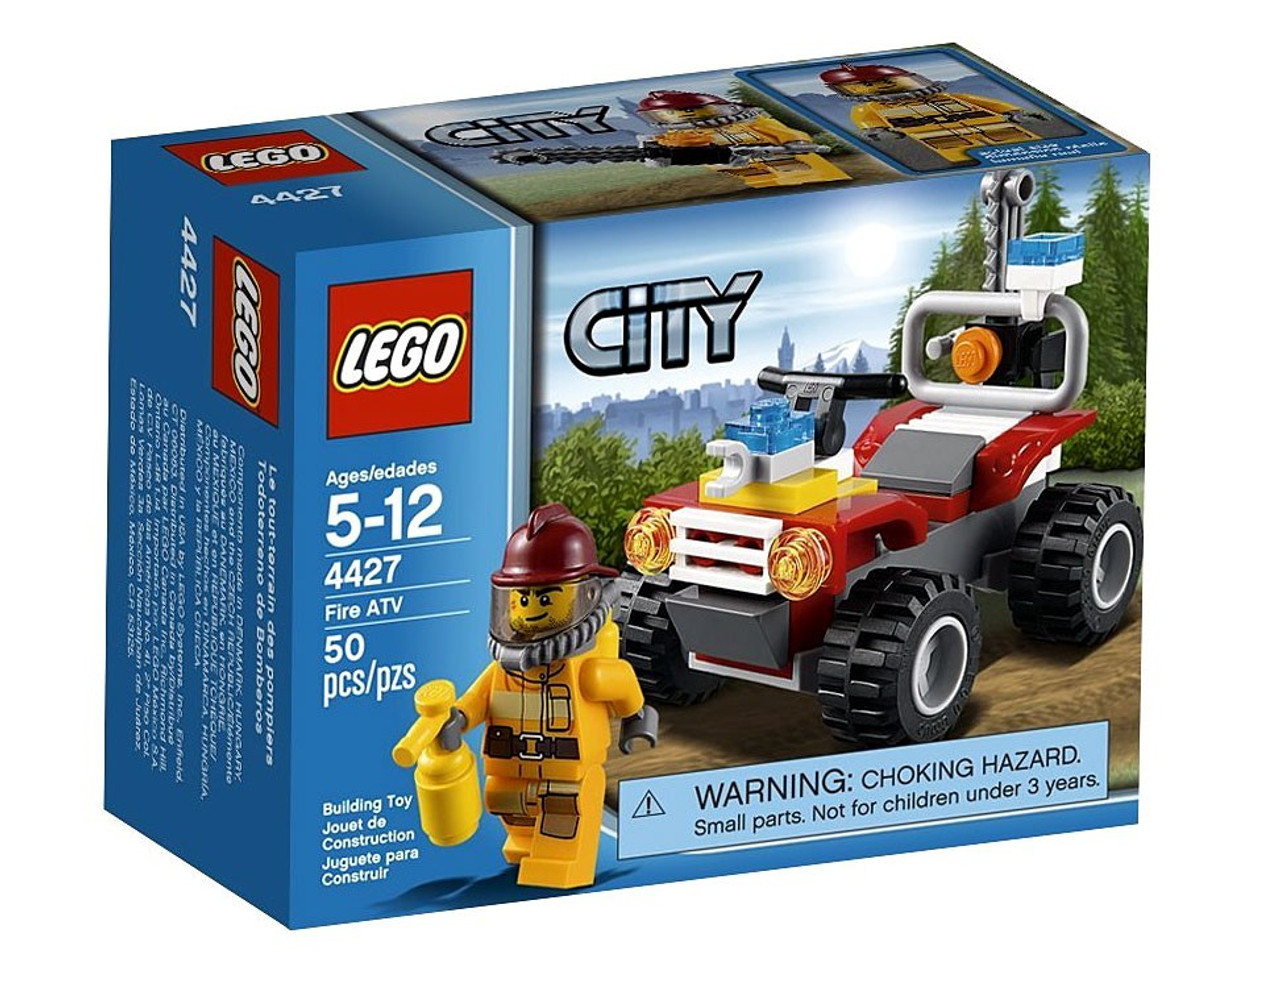 LEGO City Fire ATV Set #4427